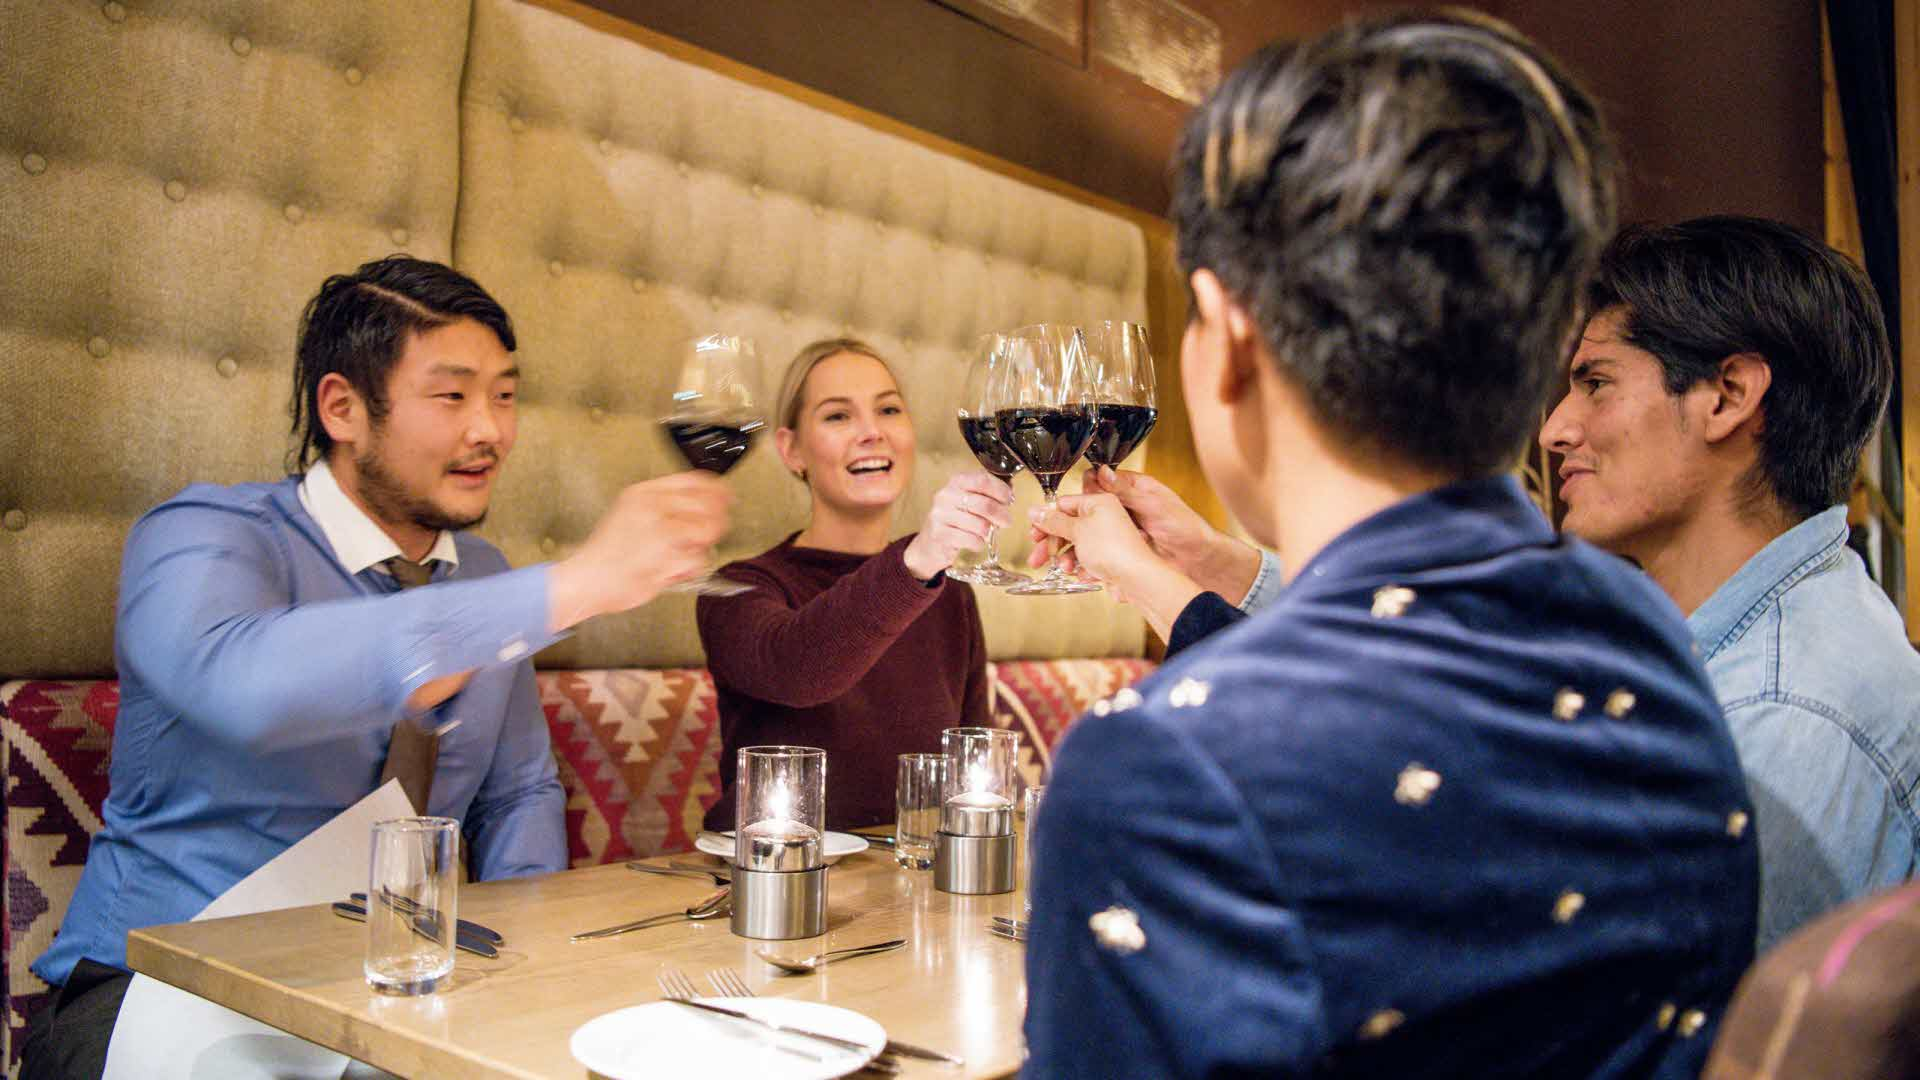 Four people toasting and smiling around a table at Restaurant Arven